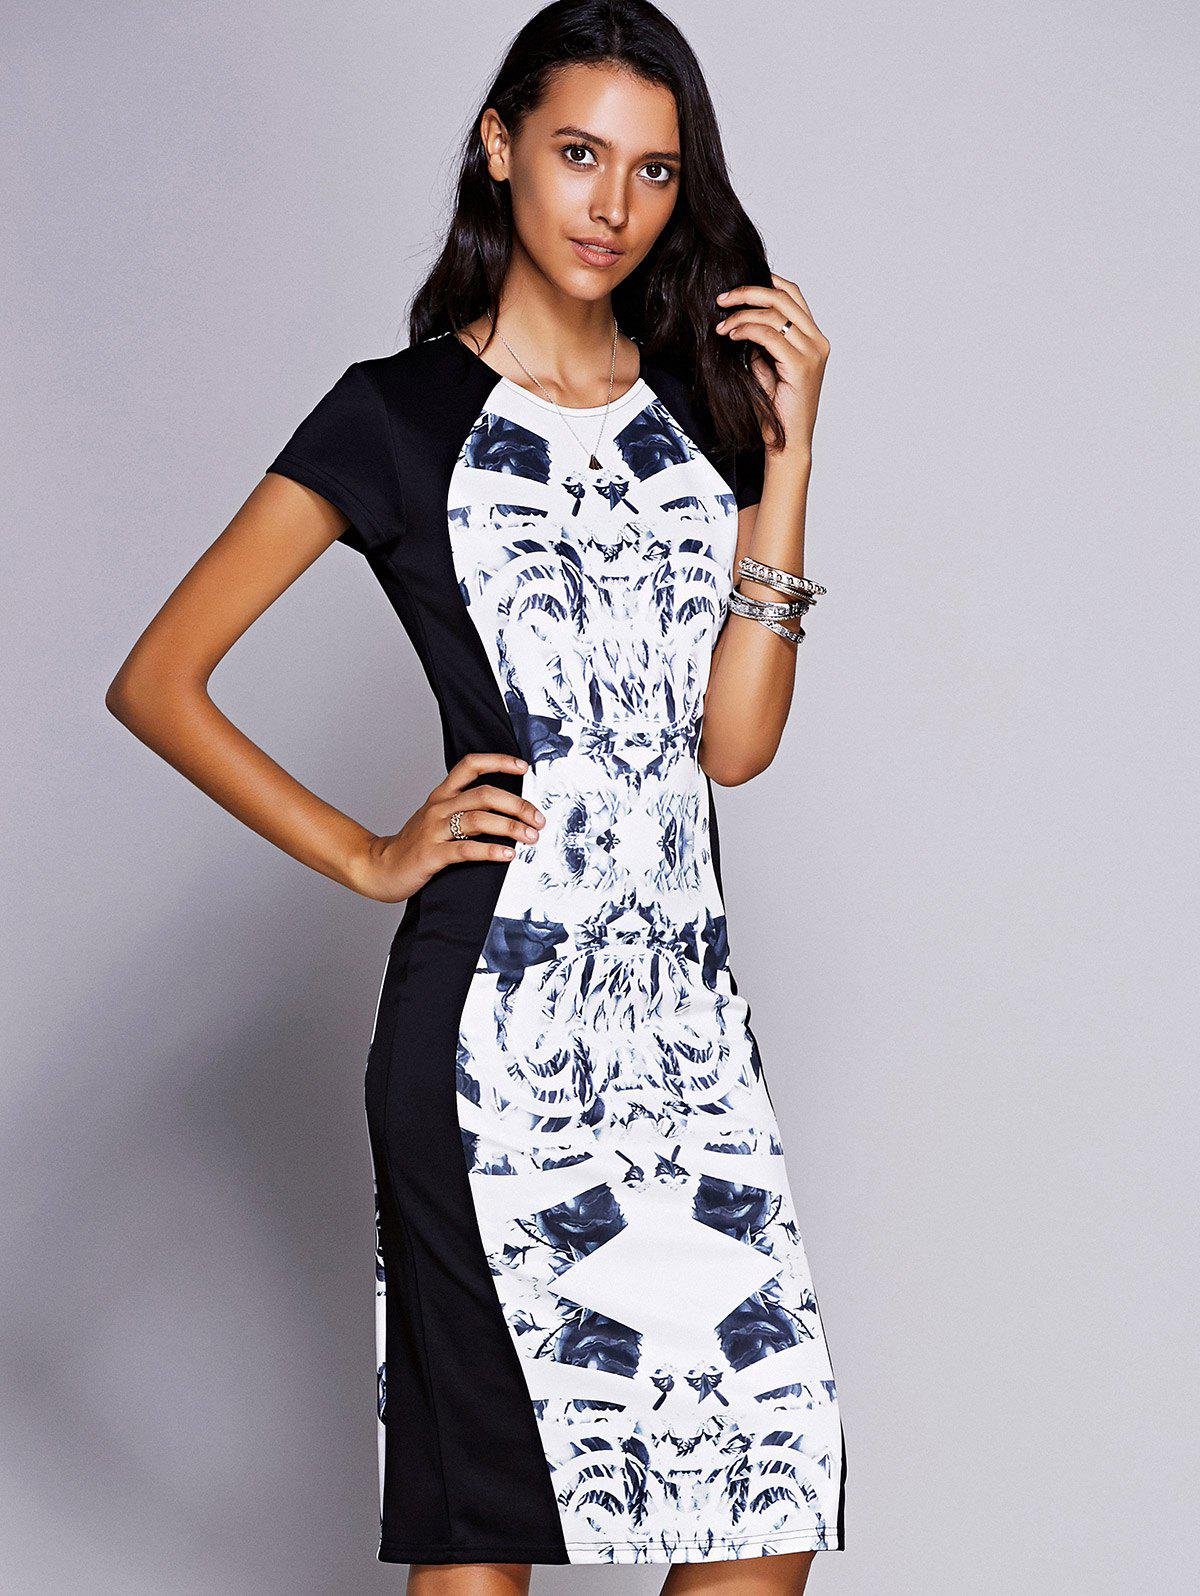 Elegant Women's Jewel Neck Short Sleeve Print Midi Dress - BLACK L